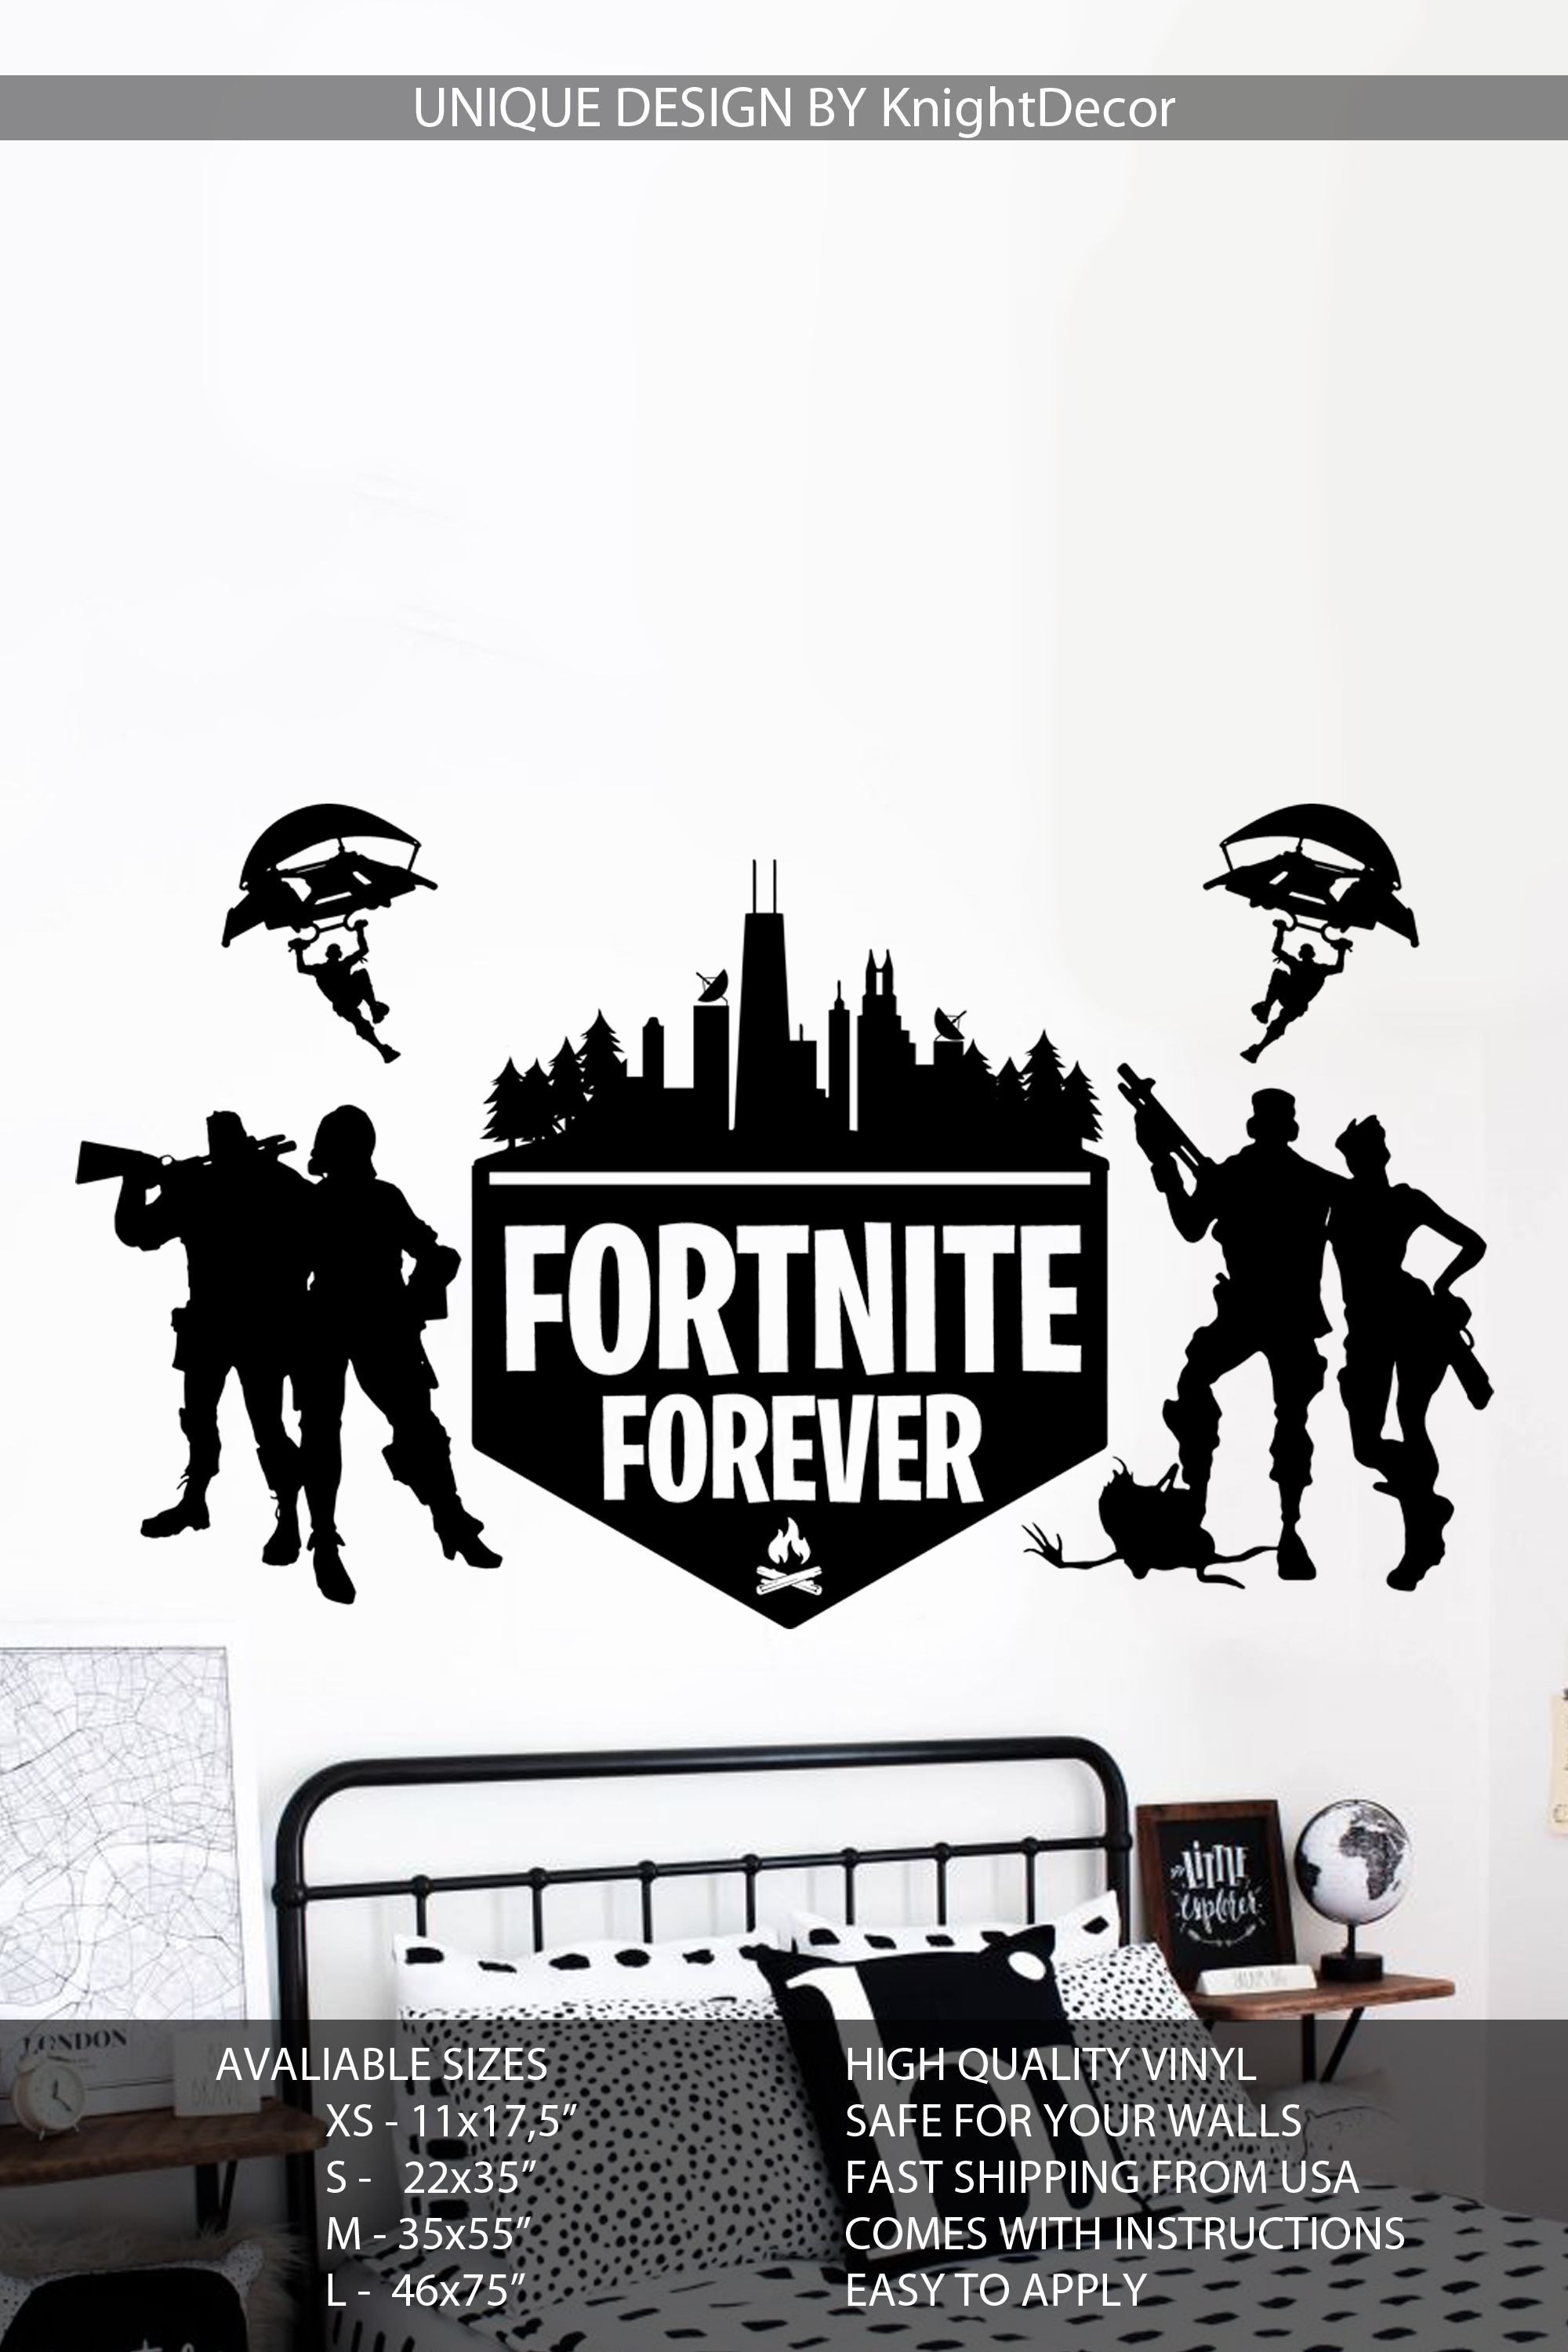 Fortnite Wall Decal Fortnite Vinyl Sticker Gaming Sticker Wall Decal Fortnite Battle Royale Wall Decals Wall Decal Sticker Vinyl Sticker